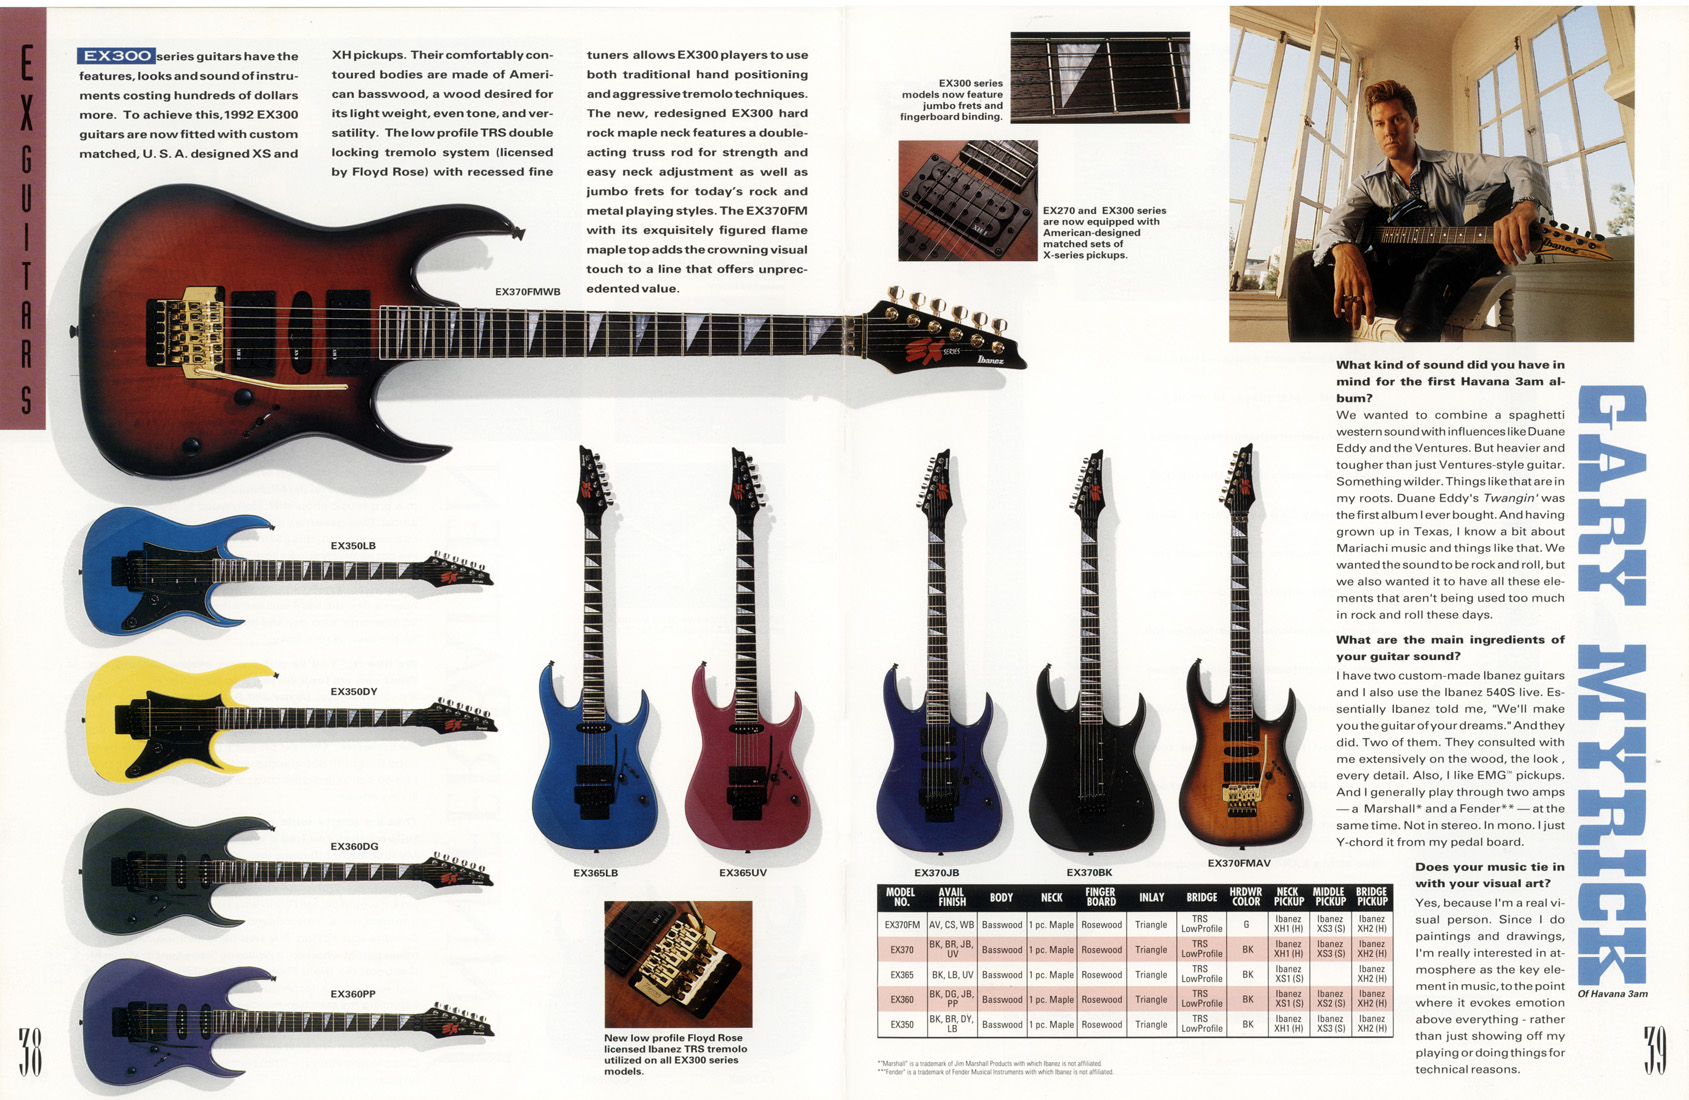 Ibanez Ex 360 Wiring Diagram Detailed Schematic Diagrams Humbuckers Strat On Dual Humbucker Series Wiki Fandom Powered By Wikia Bose